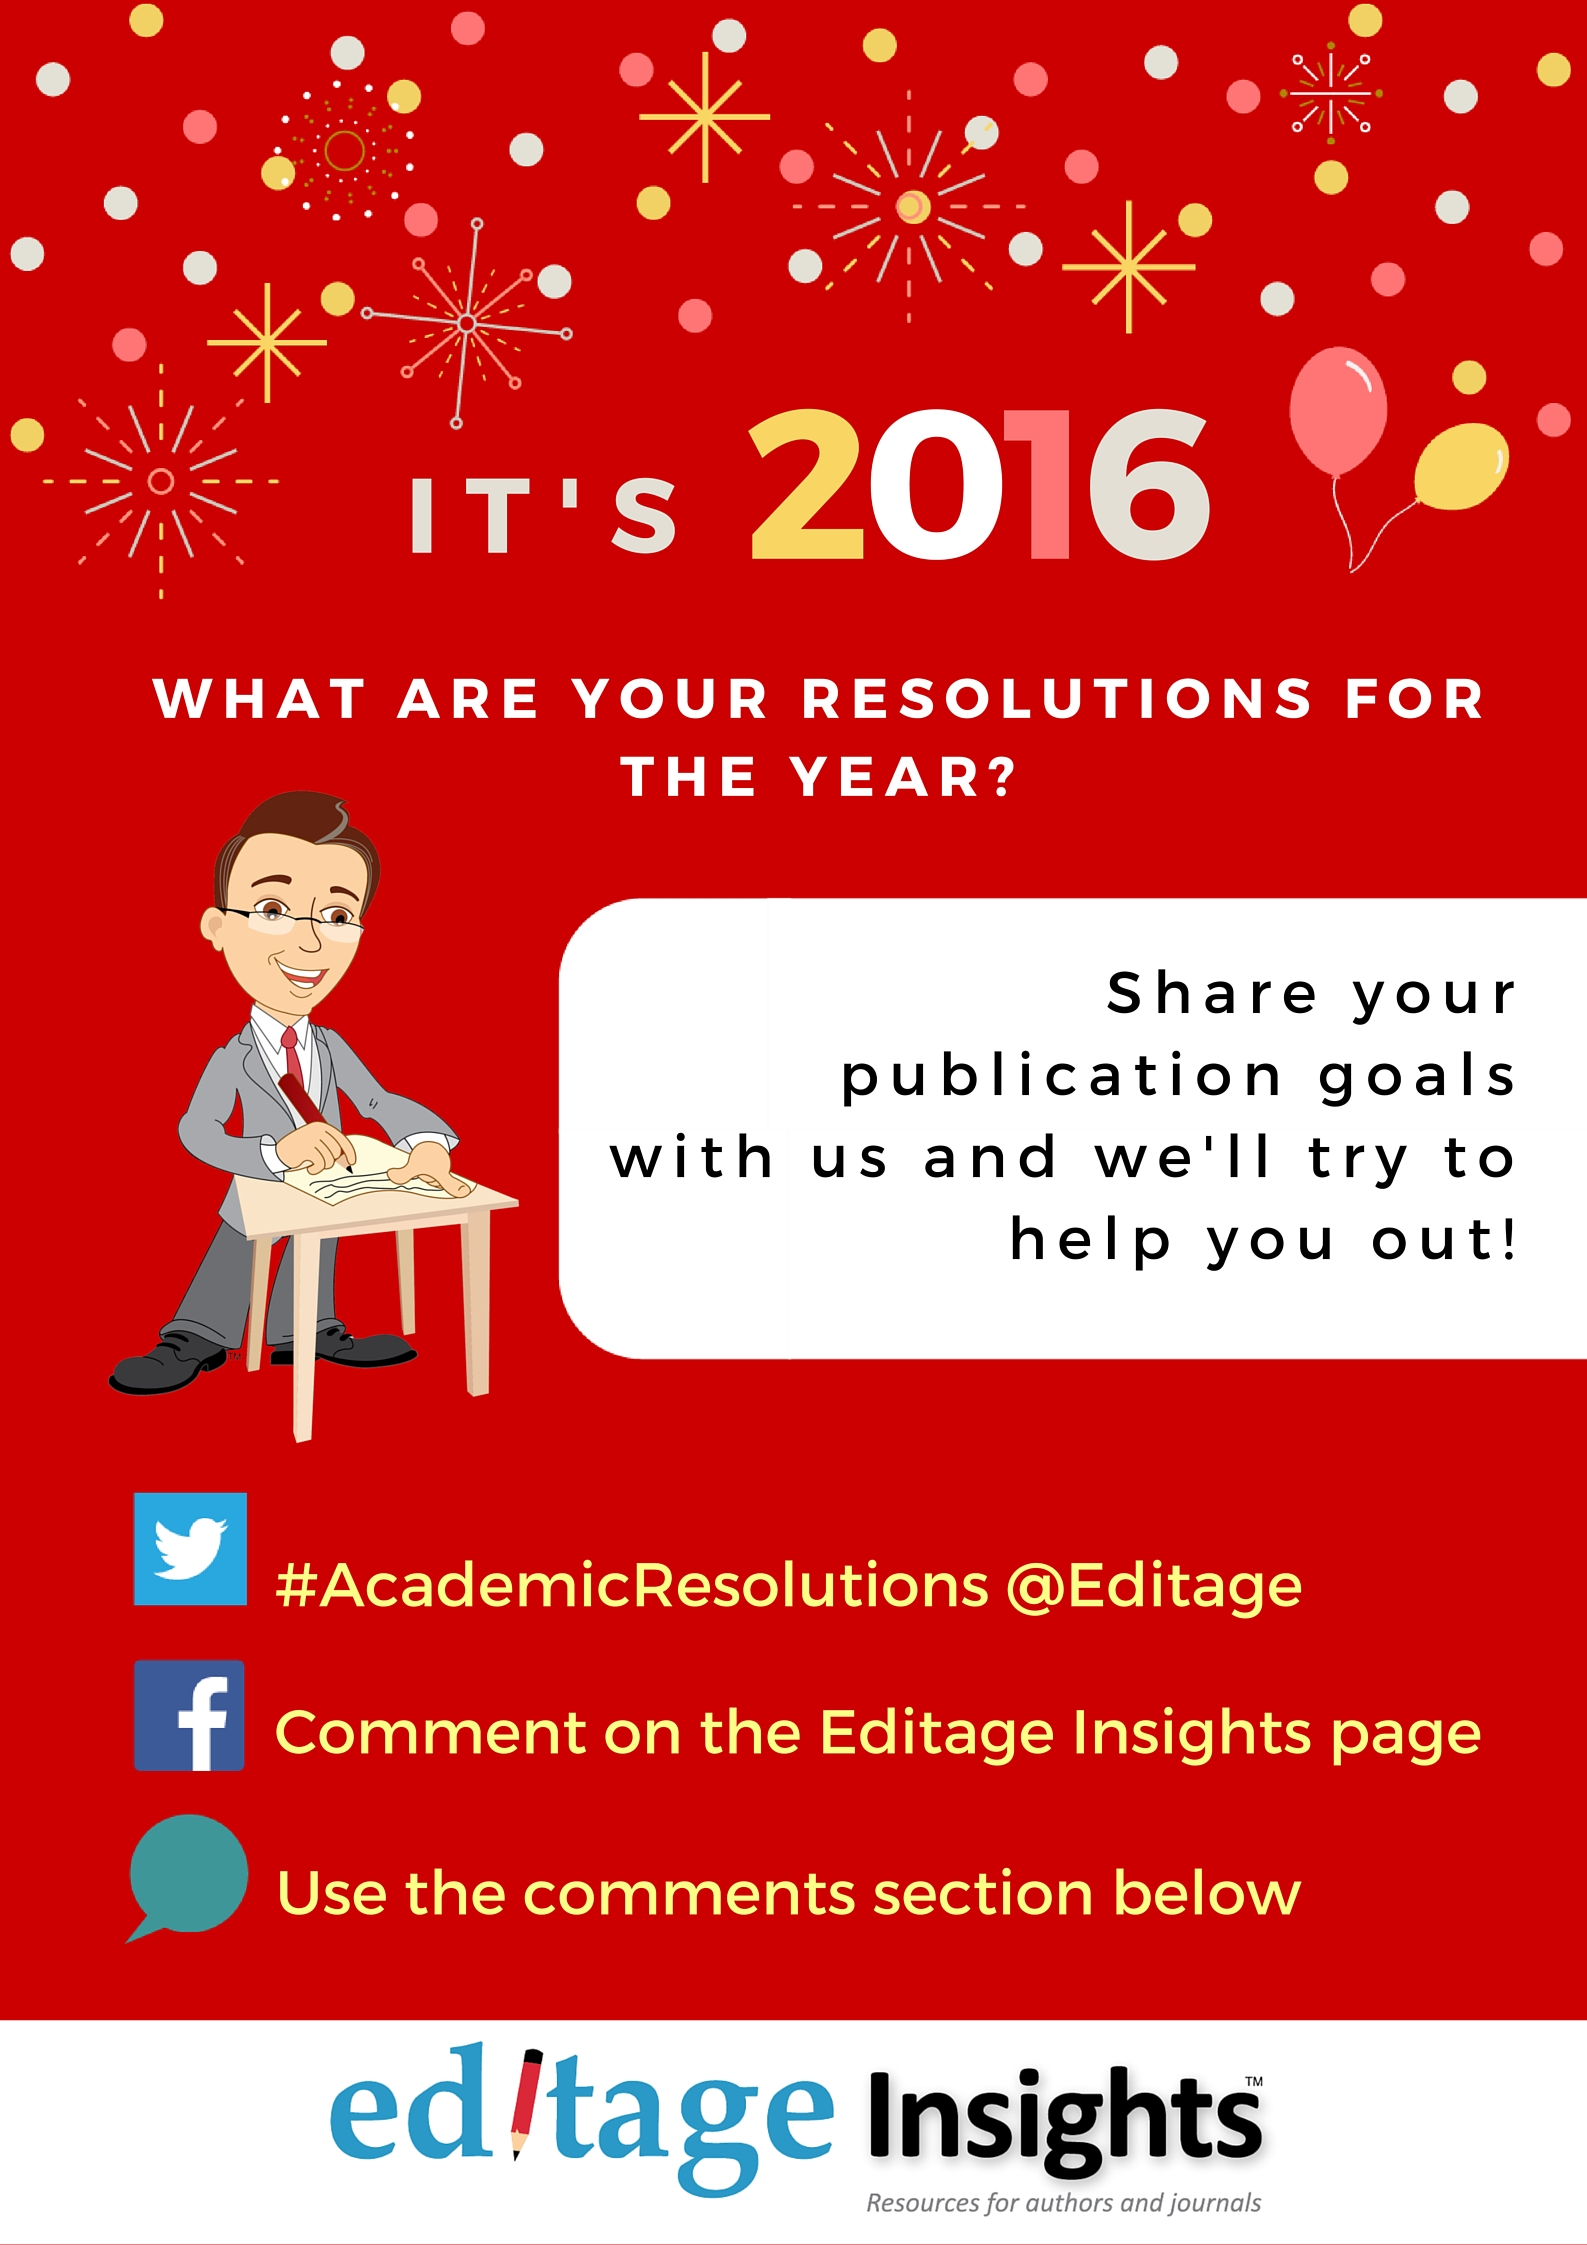 Academic resolutions for 2016